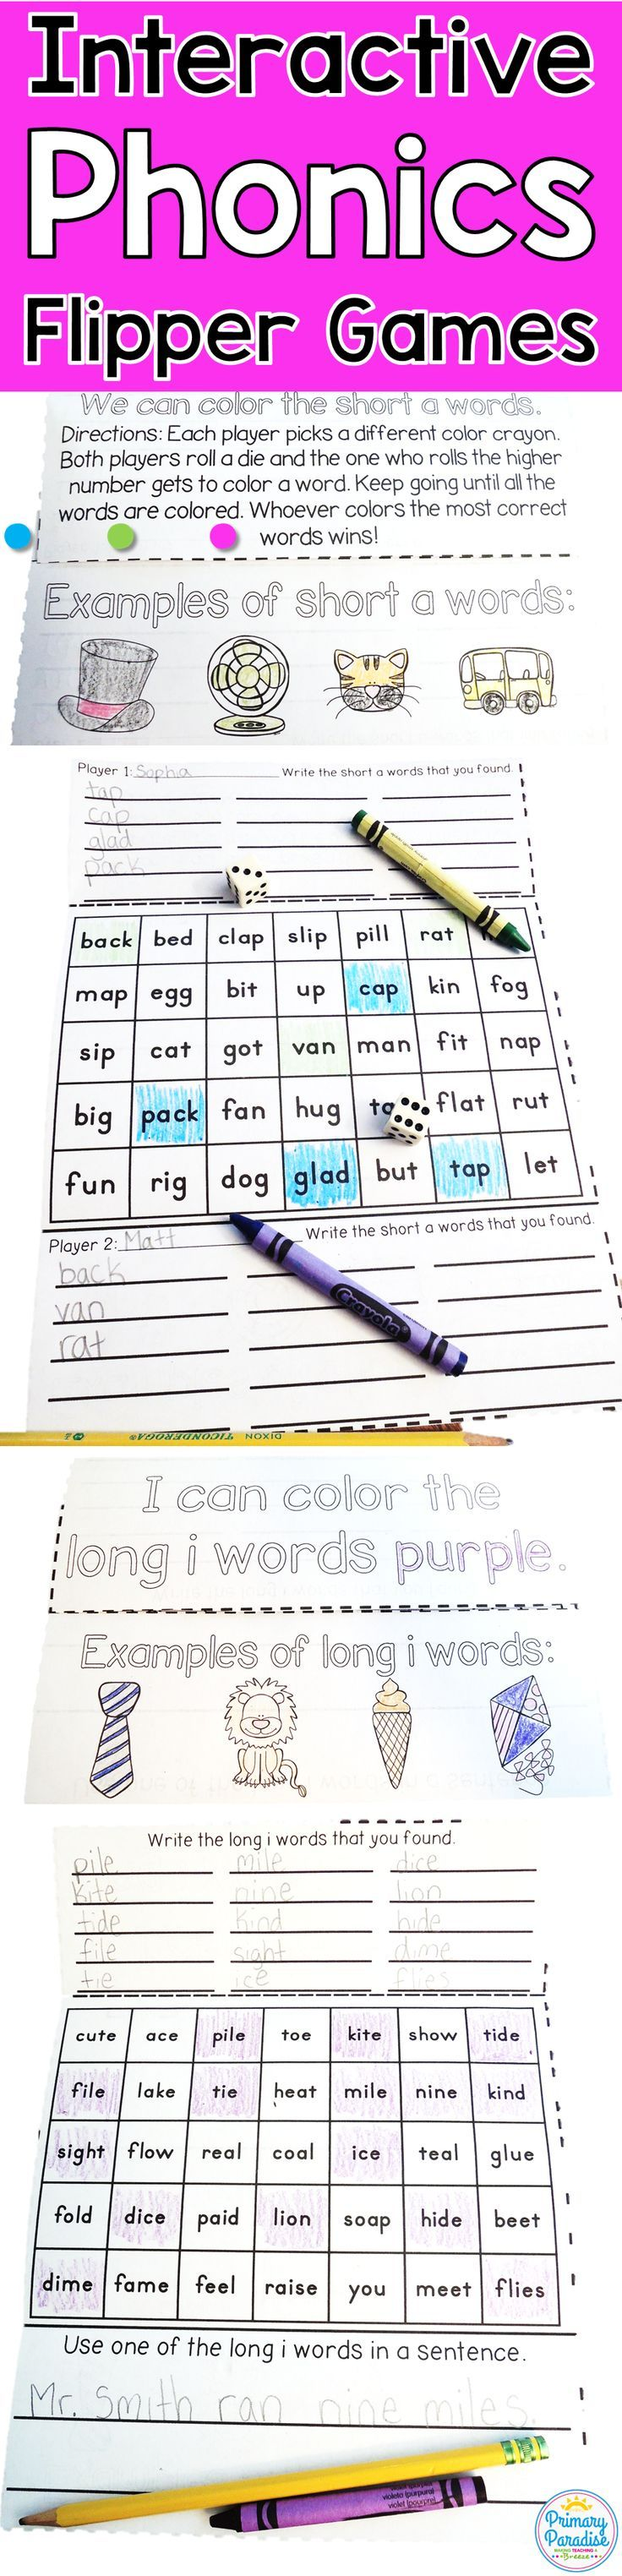 Phonics flipper interactive games are great for kindergarten, first grade, and second grade students. Fun, engaging games to play in pairs or by themselves to practice short vowel, long vowel, and digraphs. Dice games